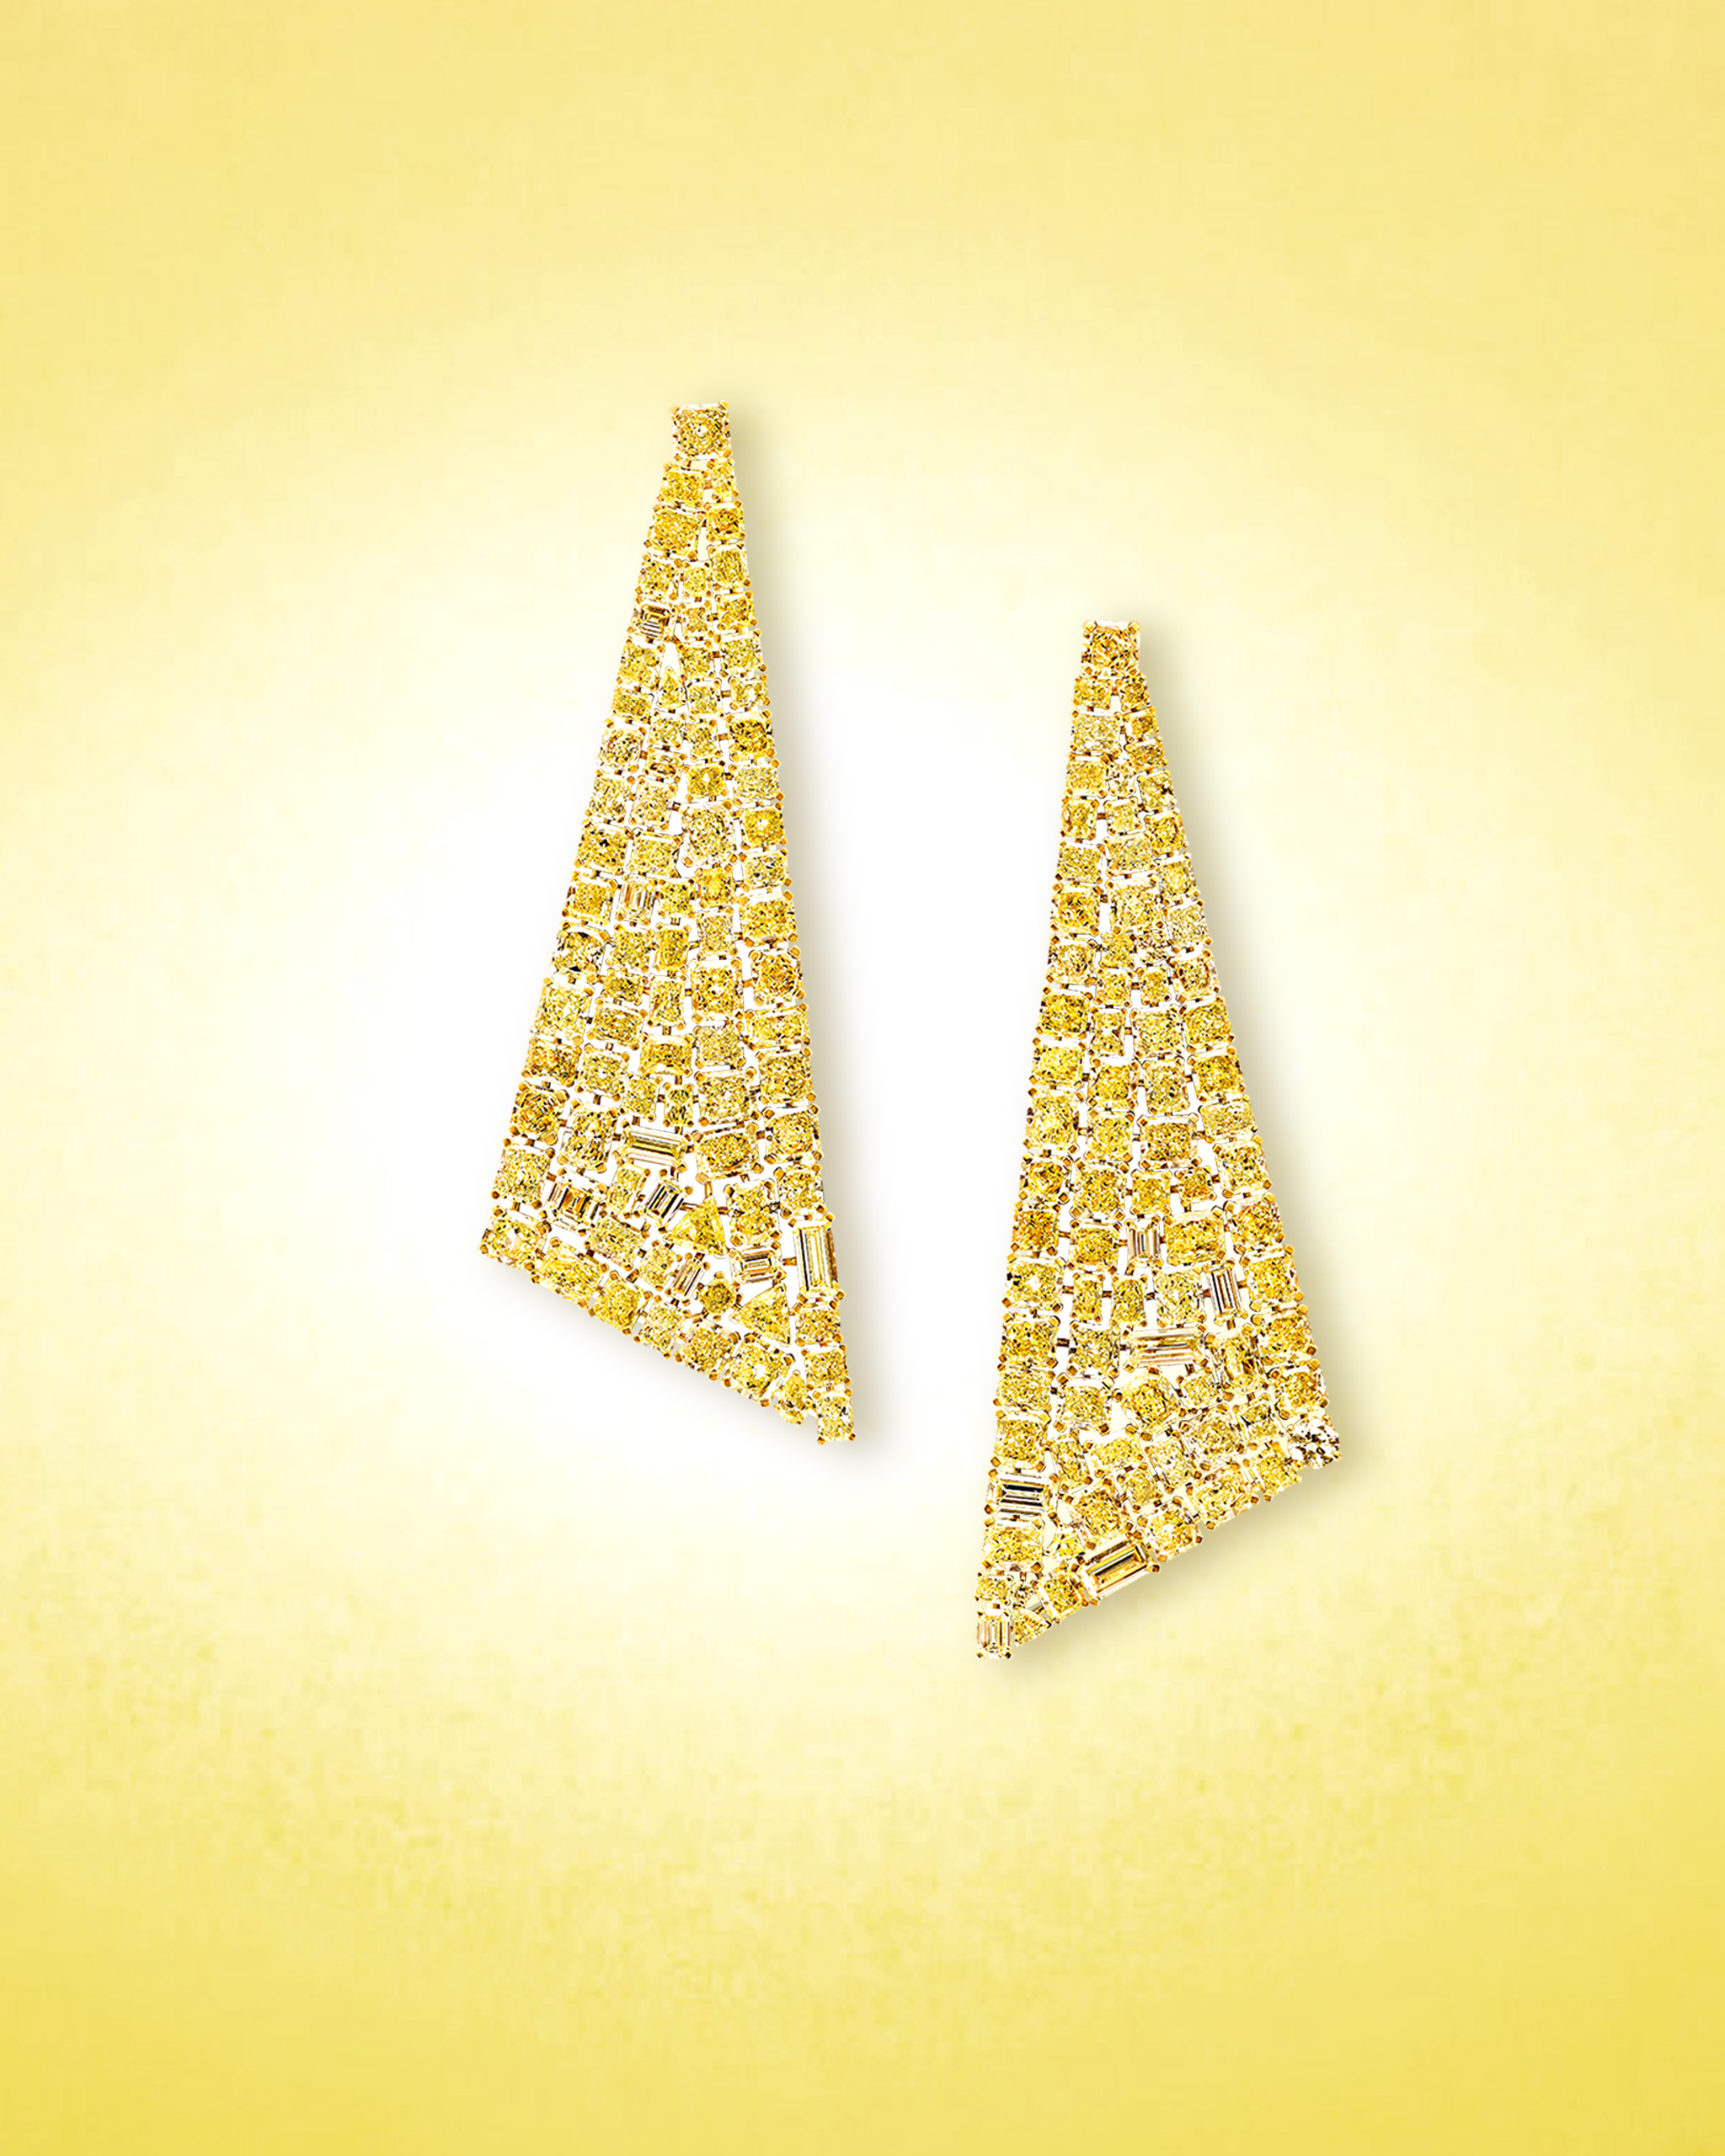 Assorted yellow diamond cuts and baguette diamonds set within statement earrings